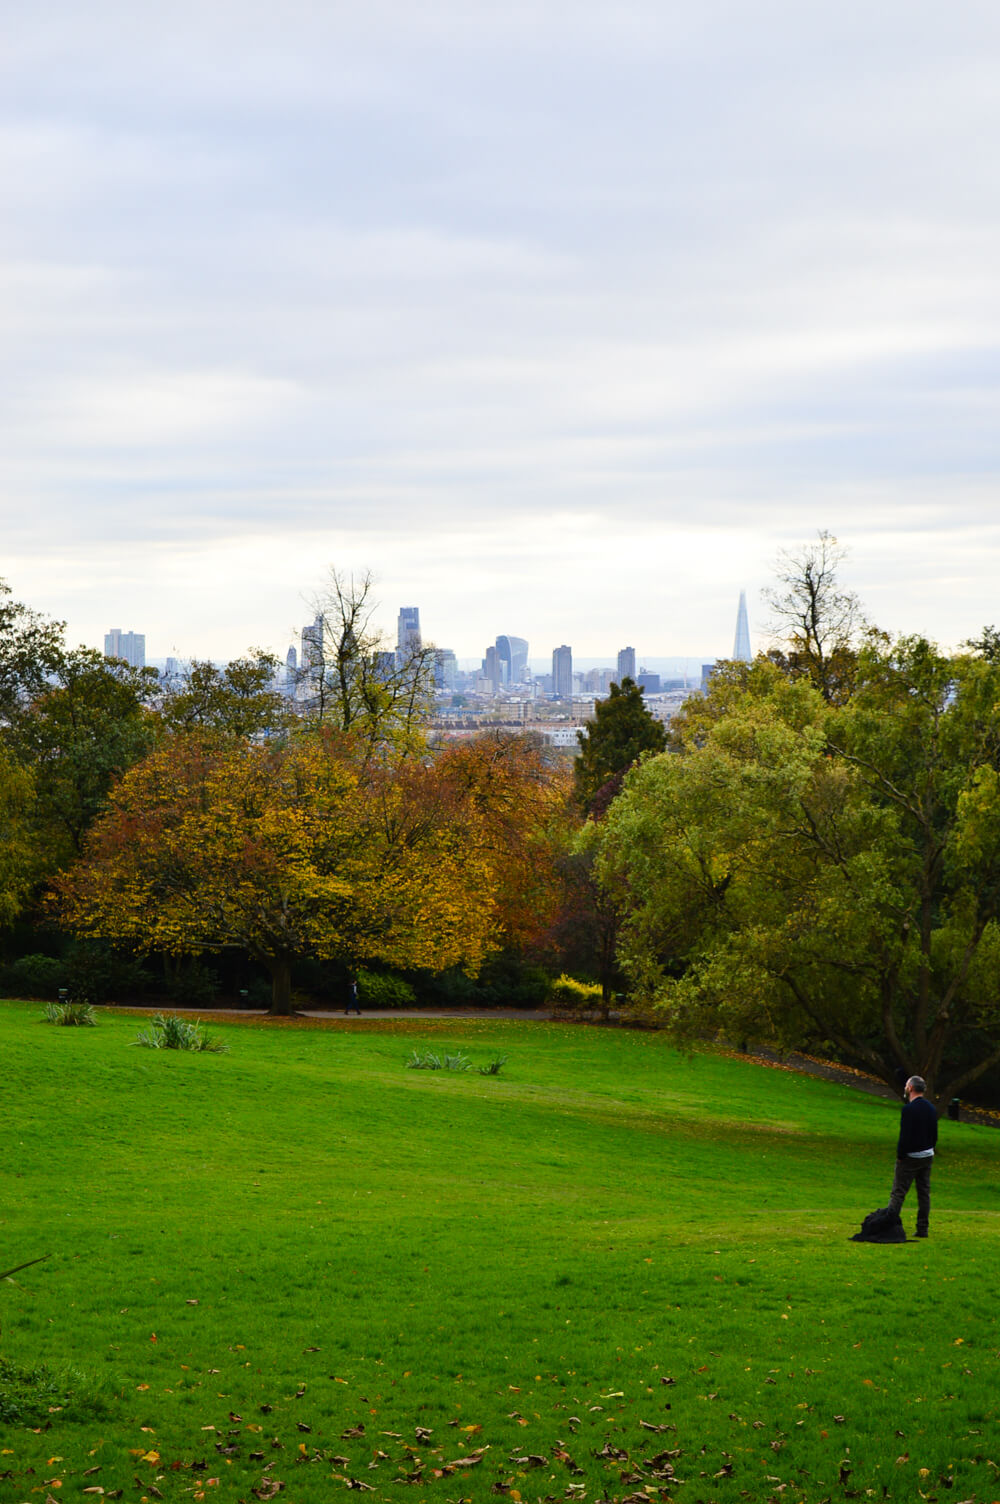 View from Waterlow Park, Hampstead, London